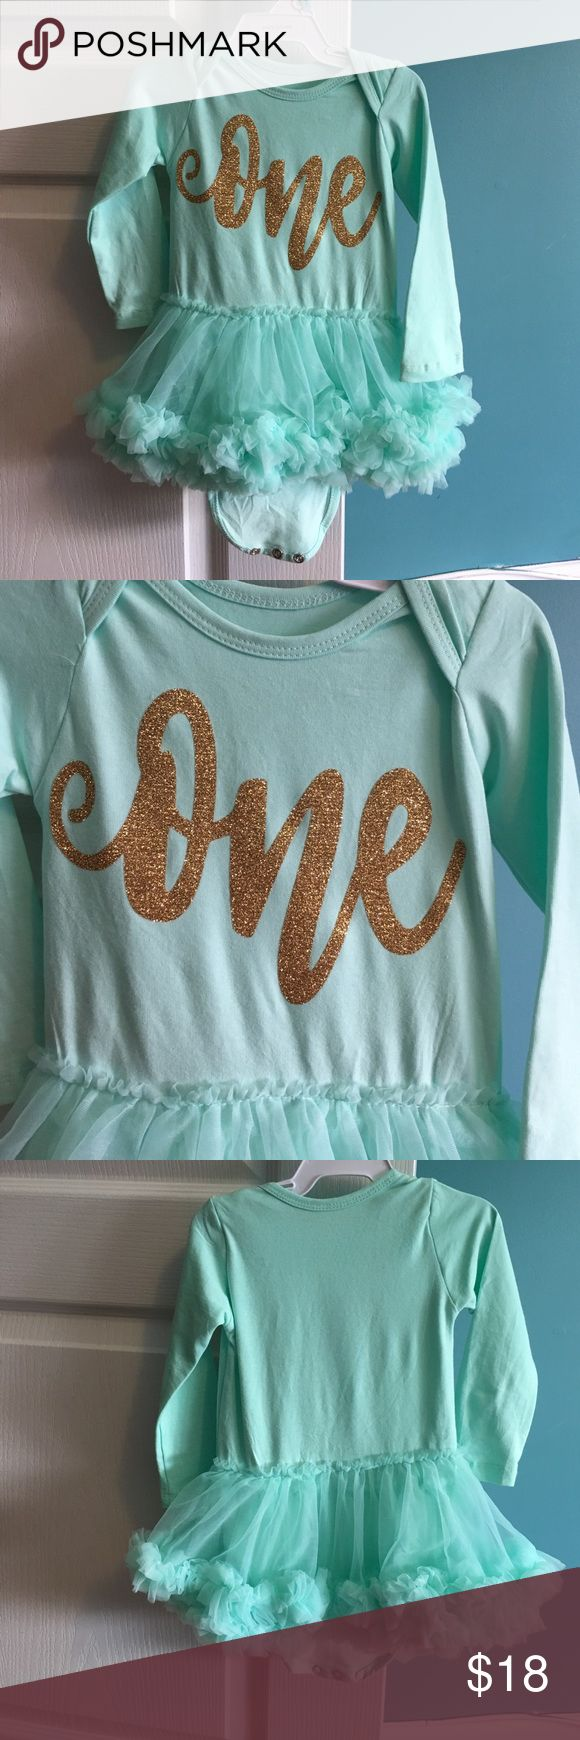 Gold dress 9 12 months quotes